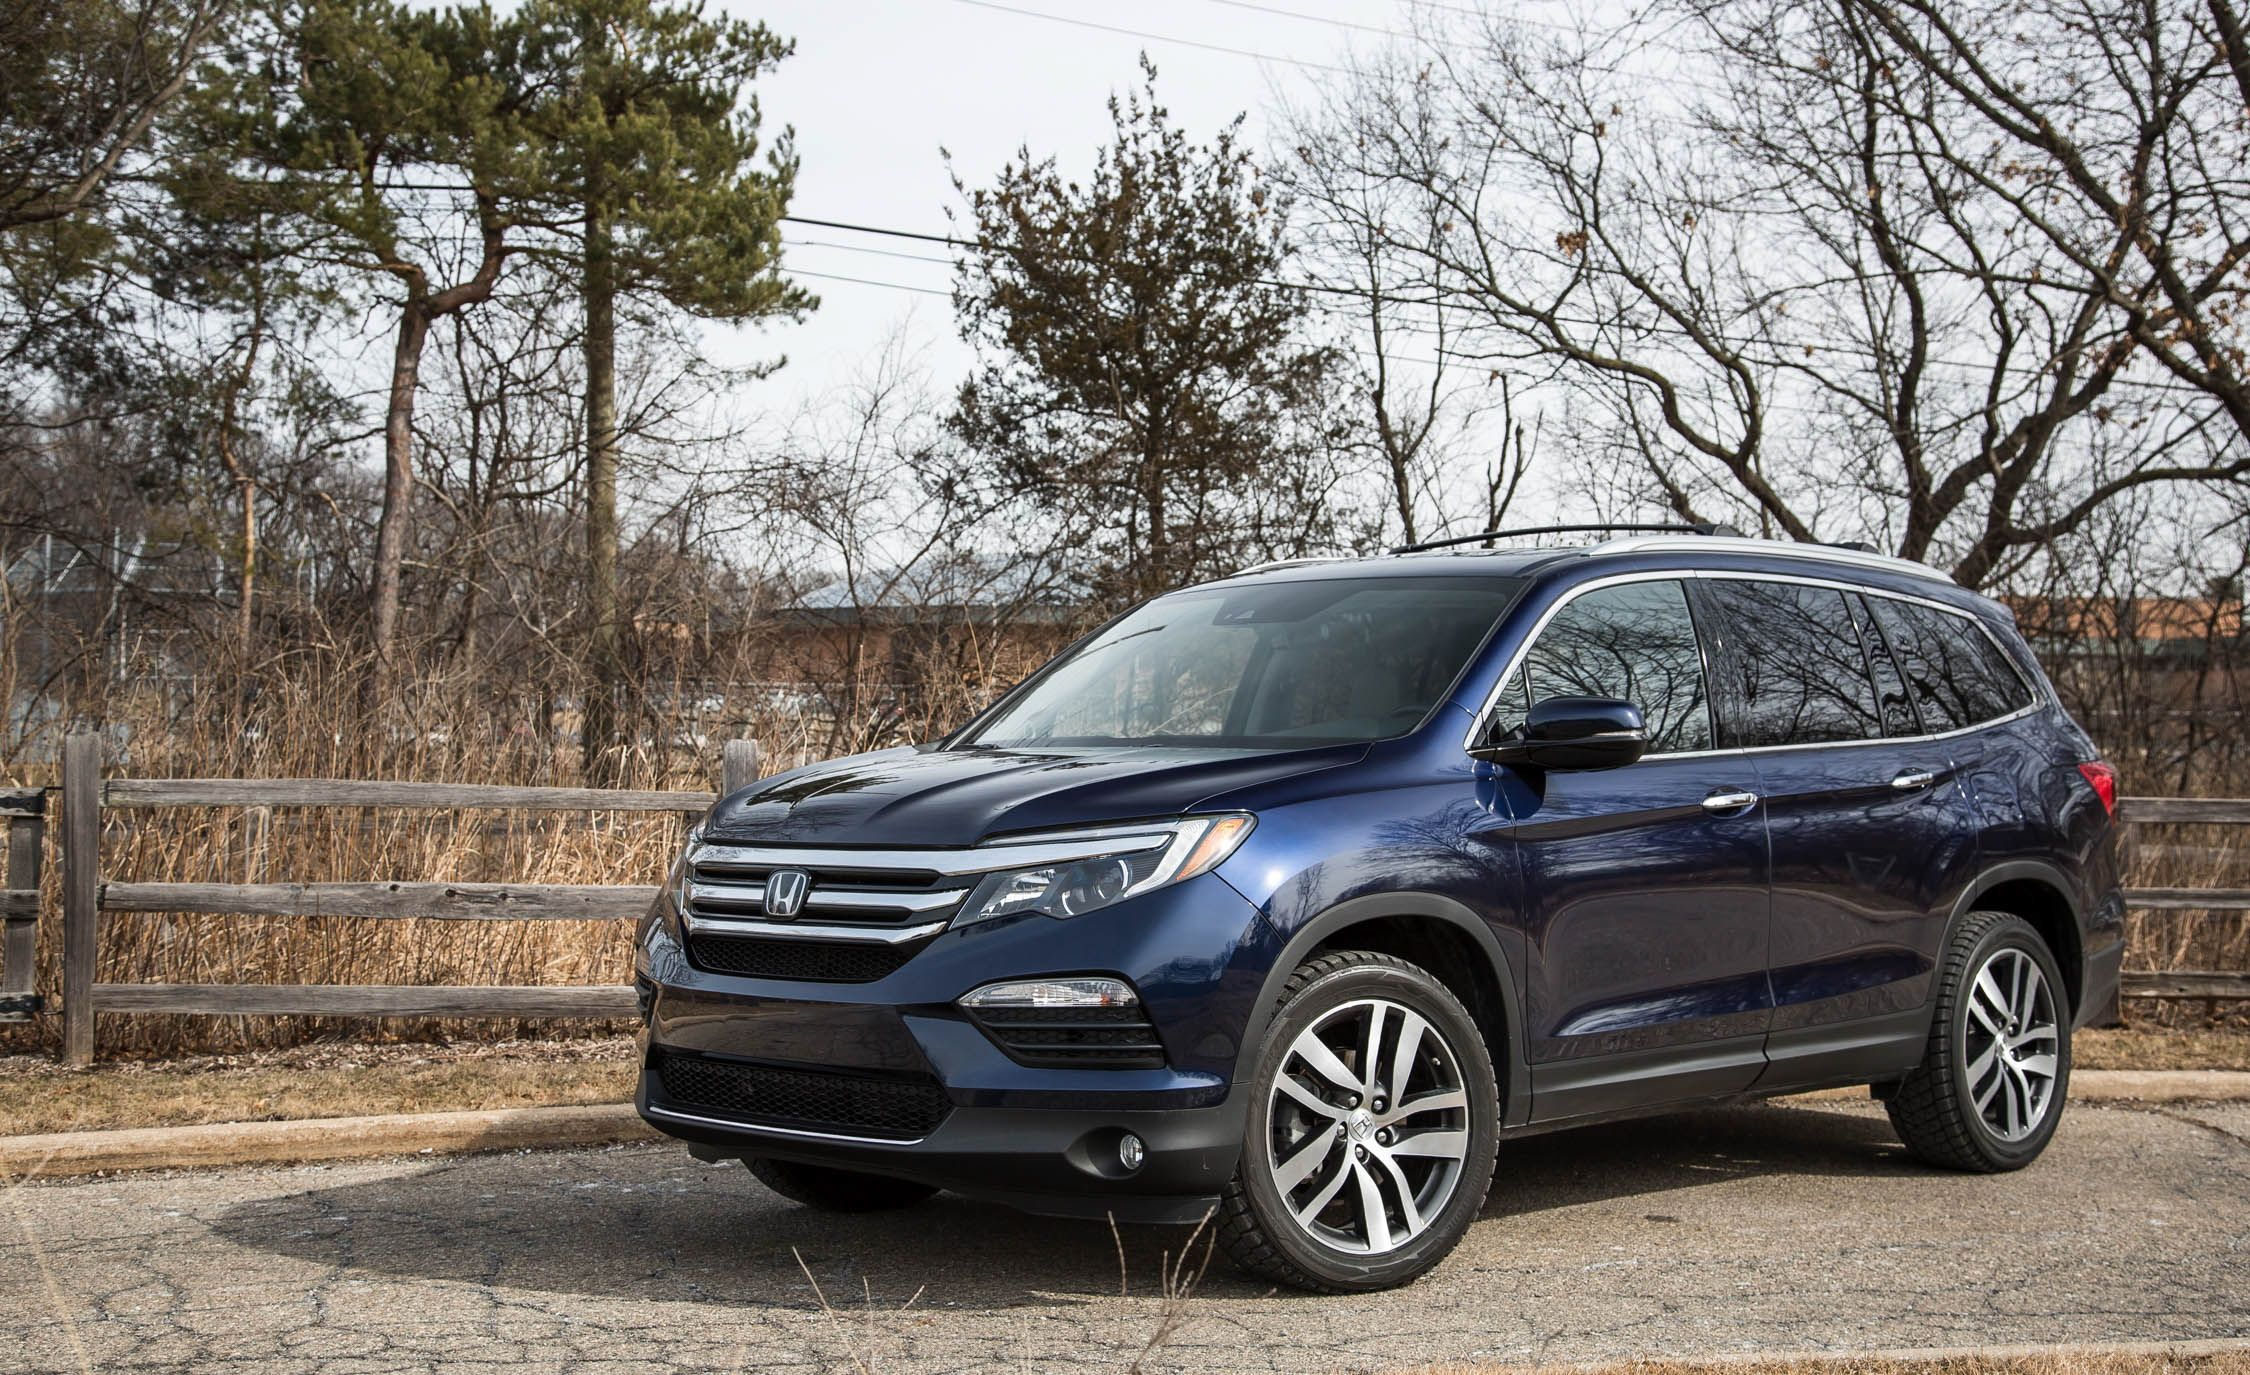 Beautiful Honda Pilot Reviews | Honda Pilot Price, Photos, And Specs | Car And Driver